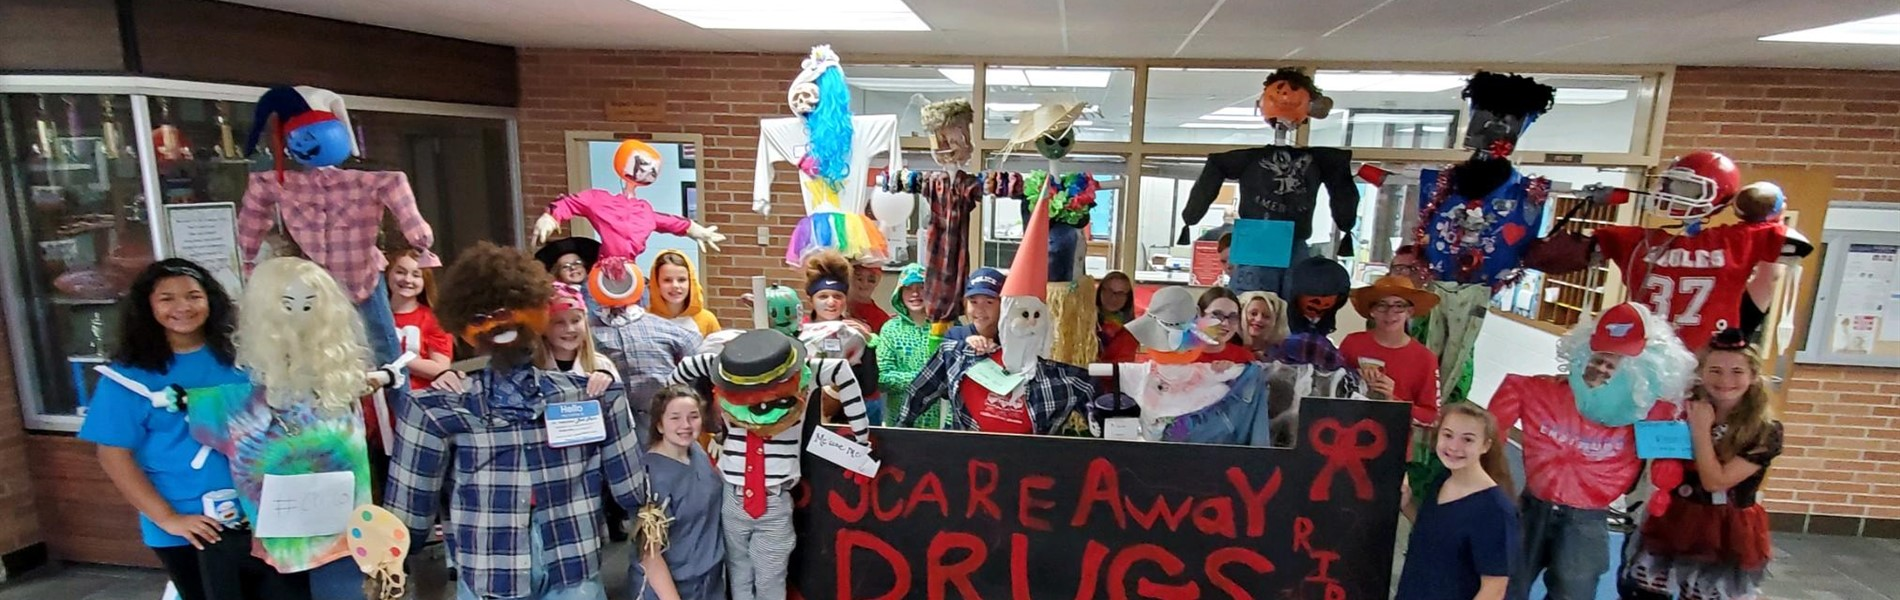 Red Ribbon Week at EMS - Scare Away Drugs!